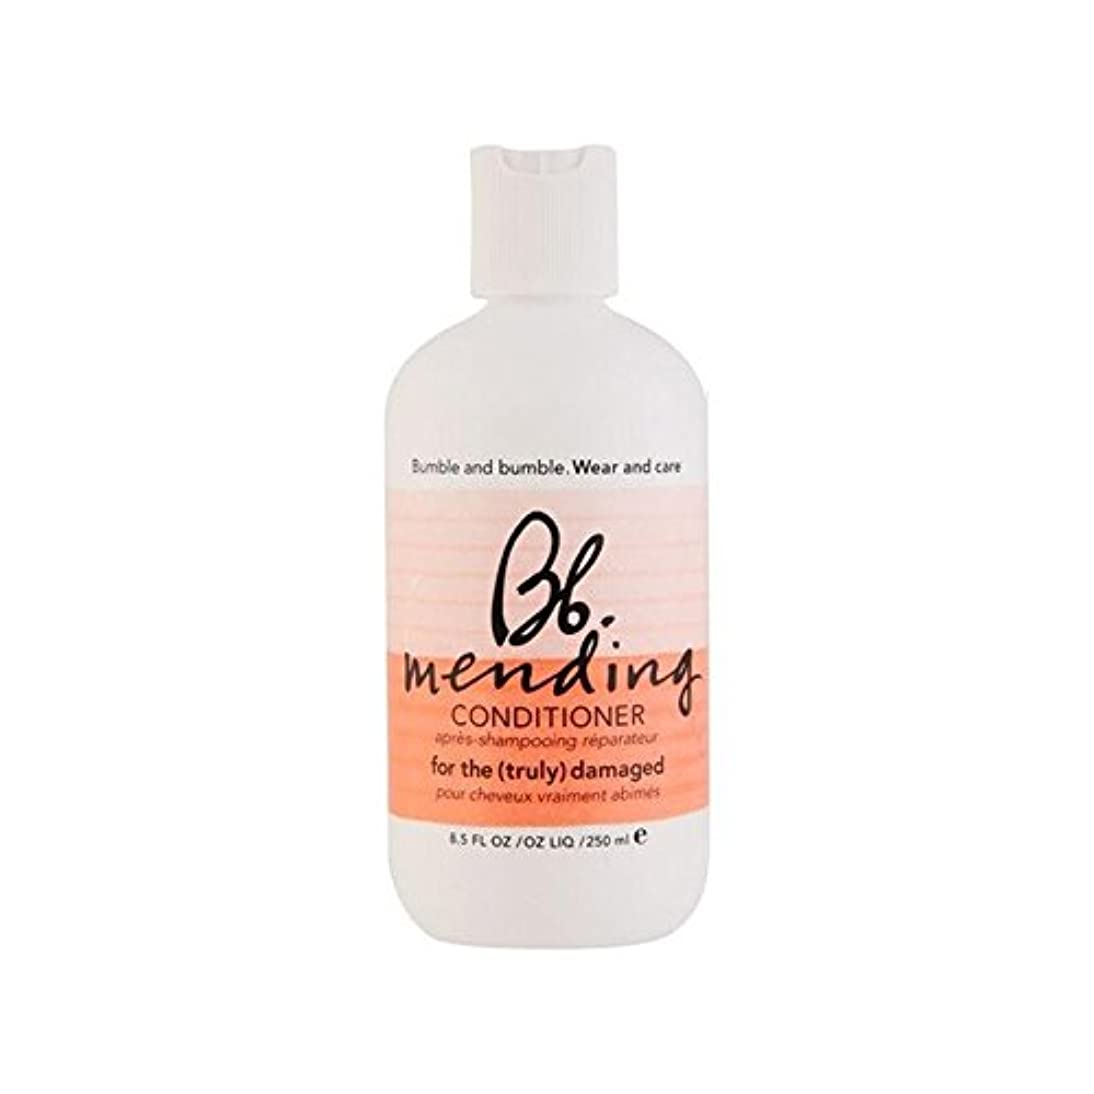 Bb Wear And Care Mending Conditioner (250ml) (Pack of 6) - 着るとコンディショナー(250ミリリットル)を補修ケア x6 [並行輸入品]